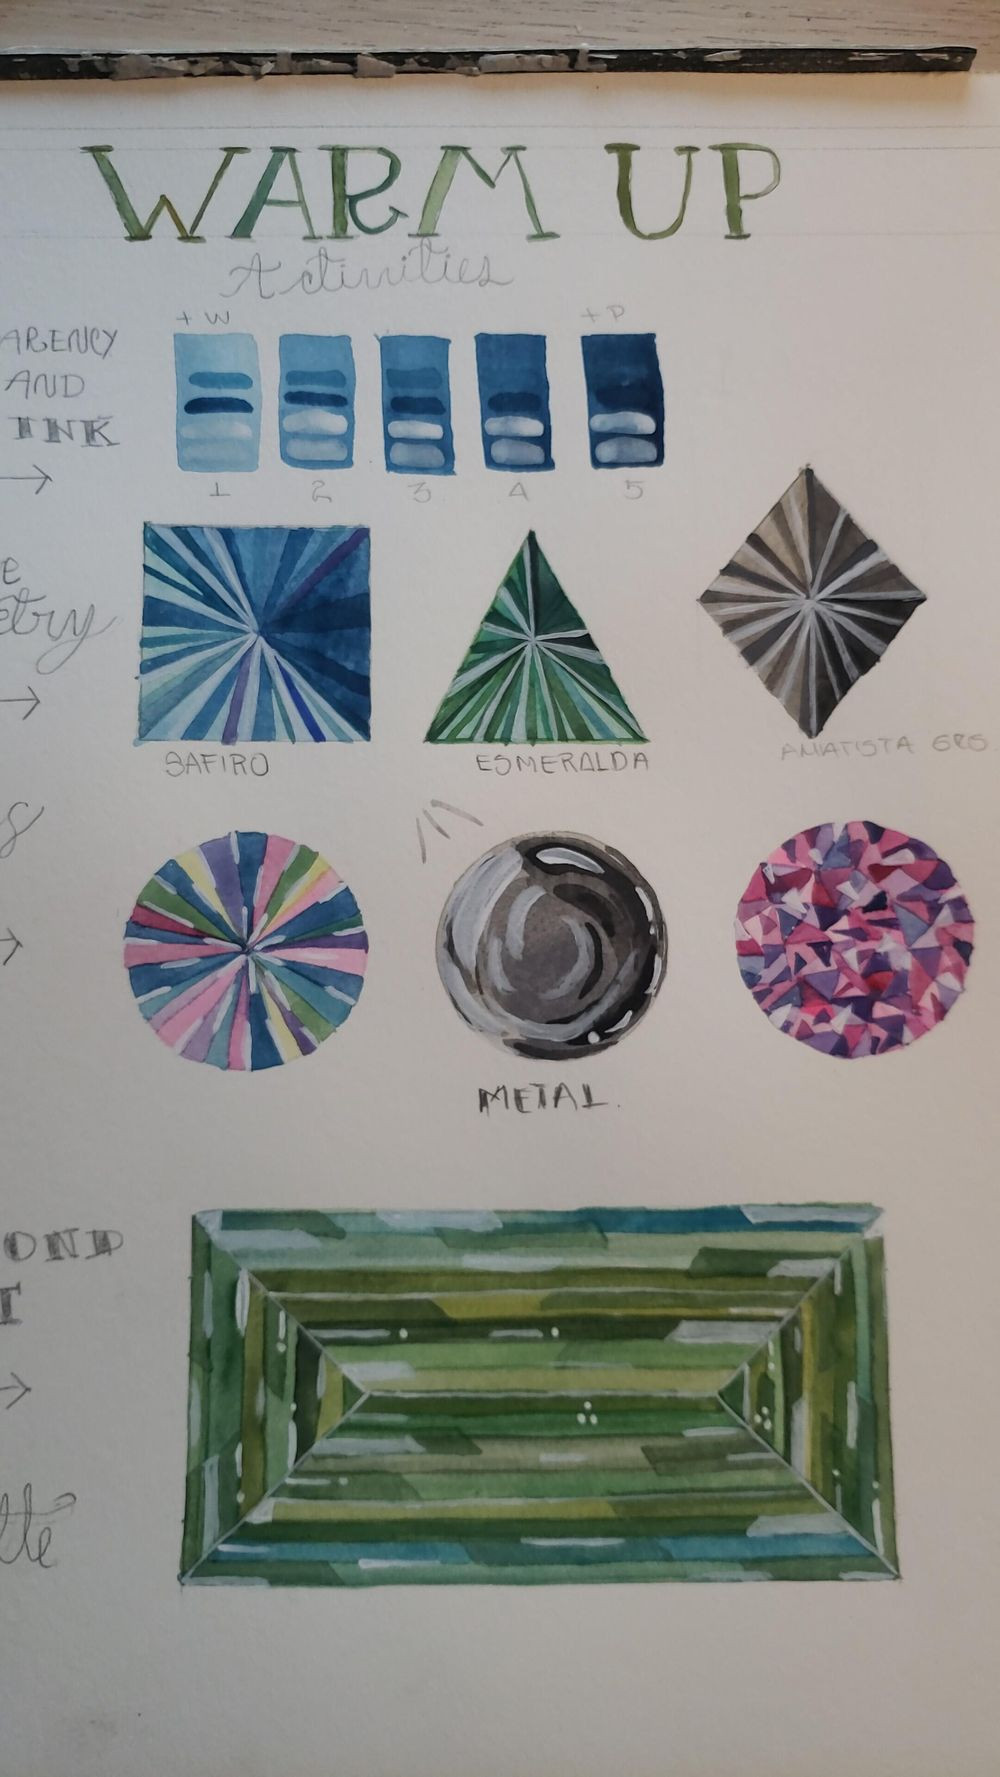 gem stone proyect - image 1 - student project